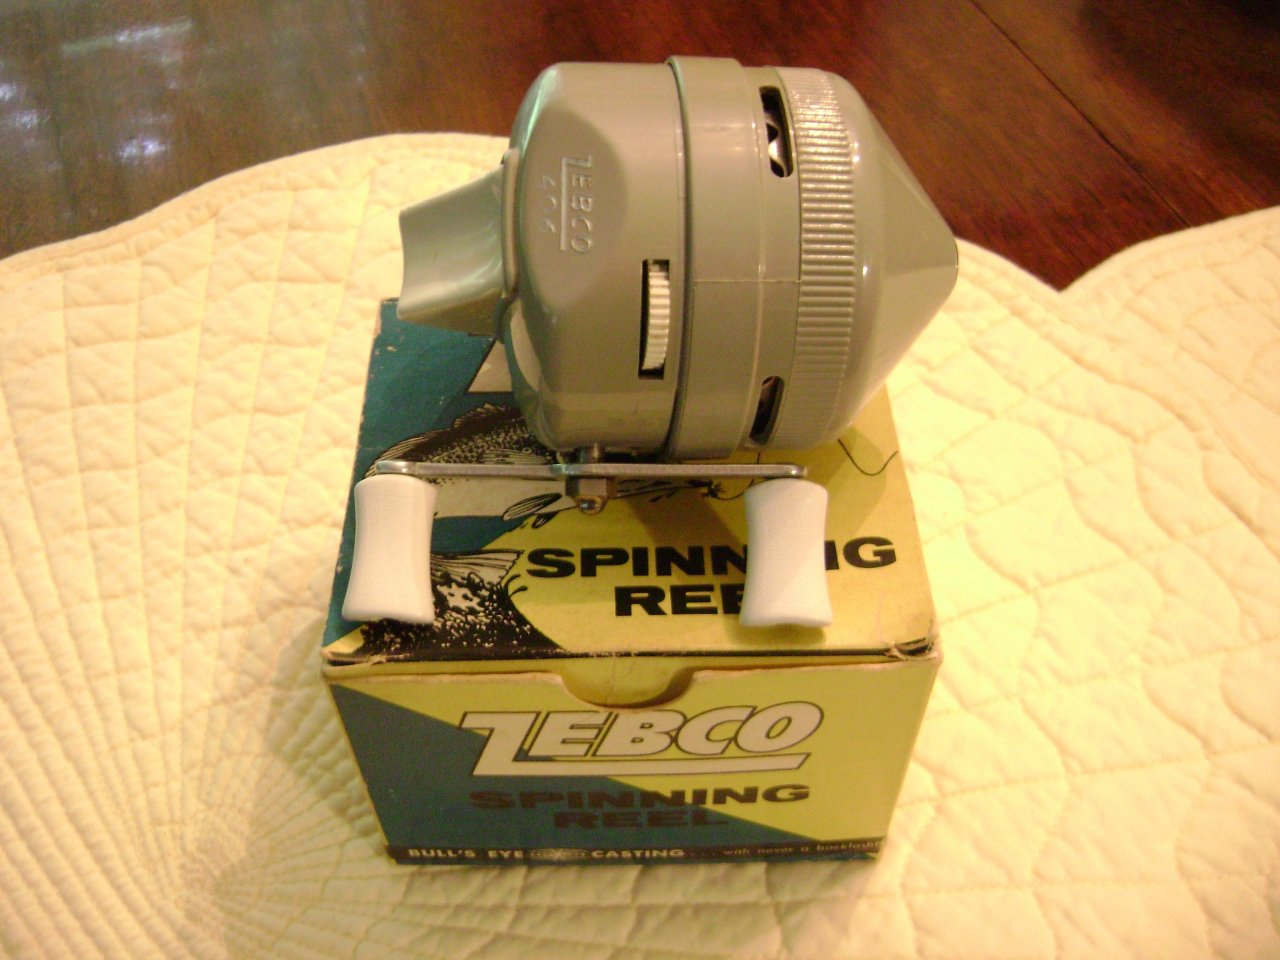 Zebco-406-reel-with-box-001-rphy6m9ql4.jpg